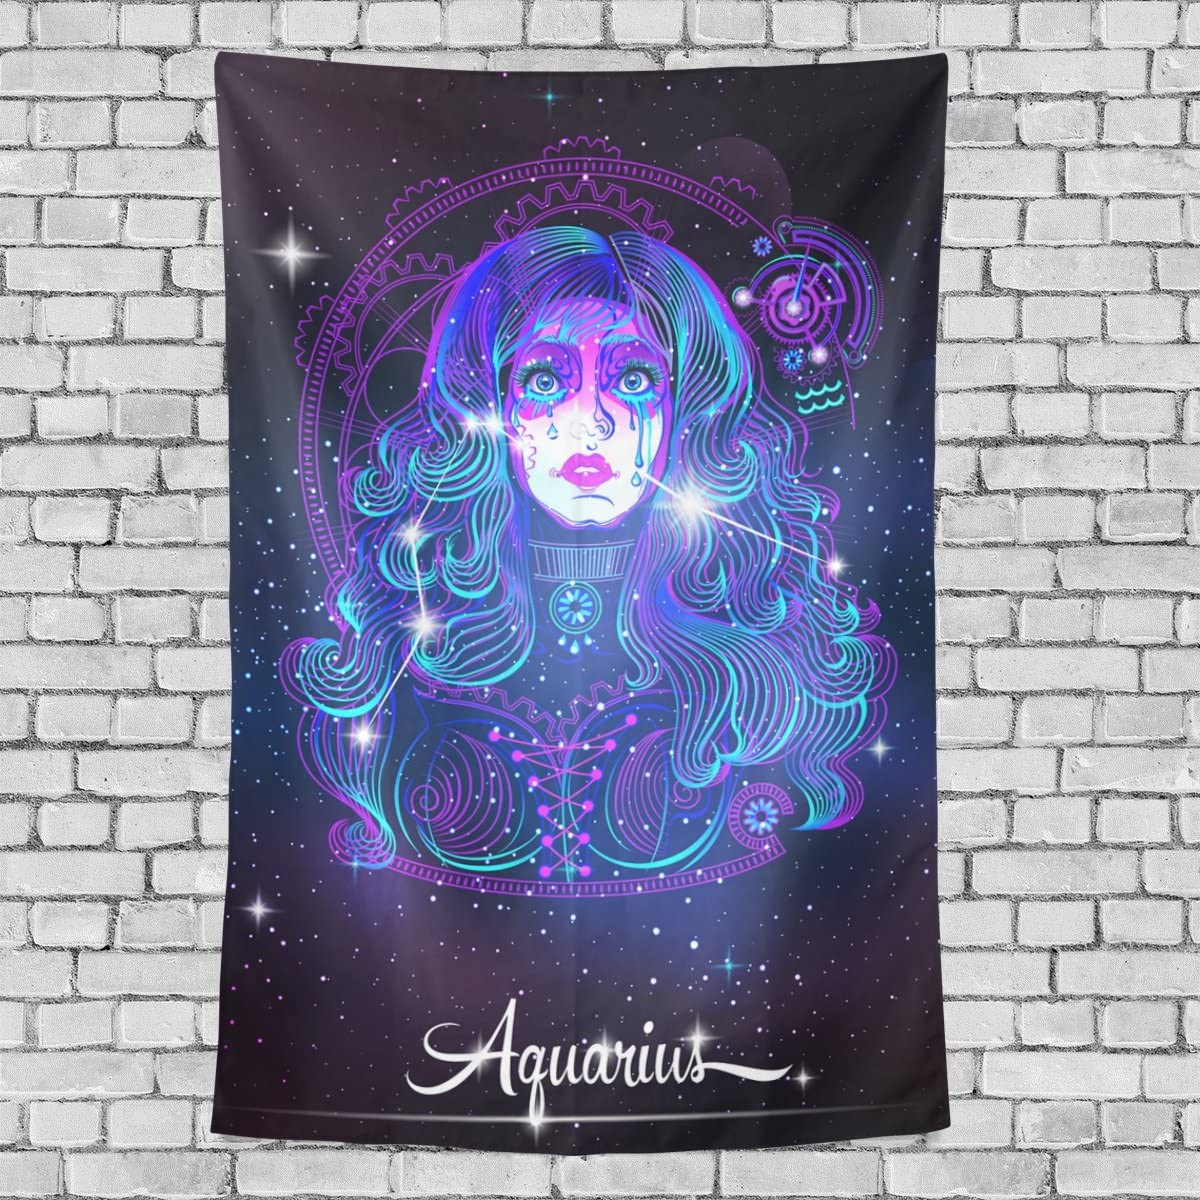 Home Decor 12 Constellation Zodiac Signs Aquarius Tapestries Hanging Bedroom Living Room Decorations Polyester Tapestry Wall Art 90X60 Inches